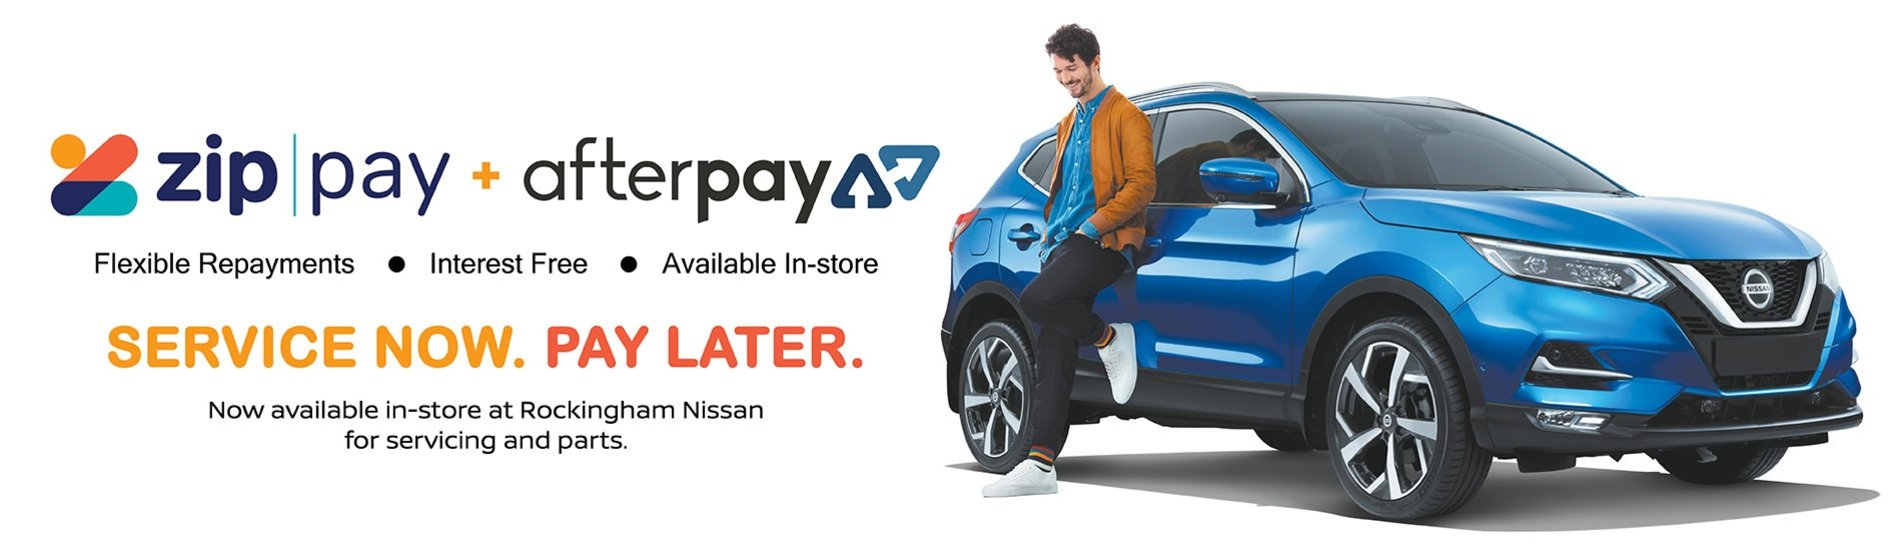 Rockingham Nissan - Zip Pay